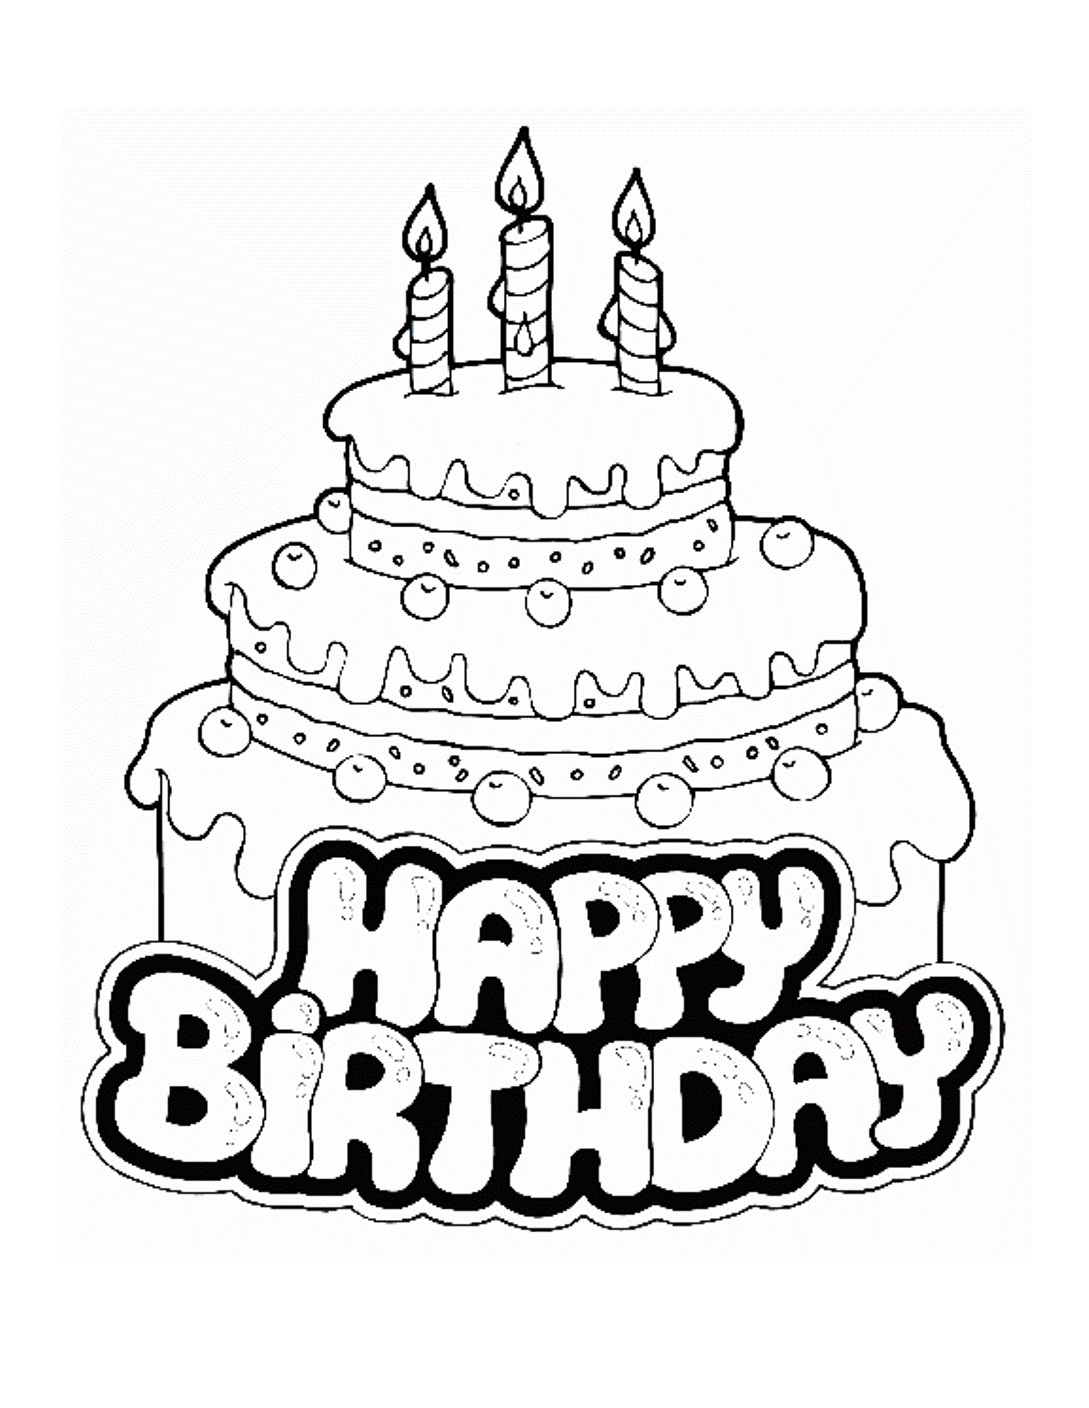 free printable birthday cake coloring for kids writing supplies apple dragon from above coloring pages Birthday Cake Coloring Page